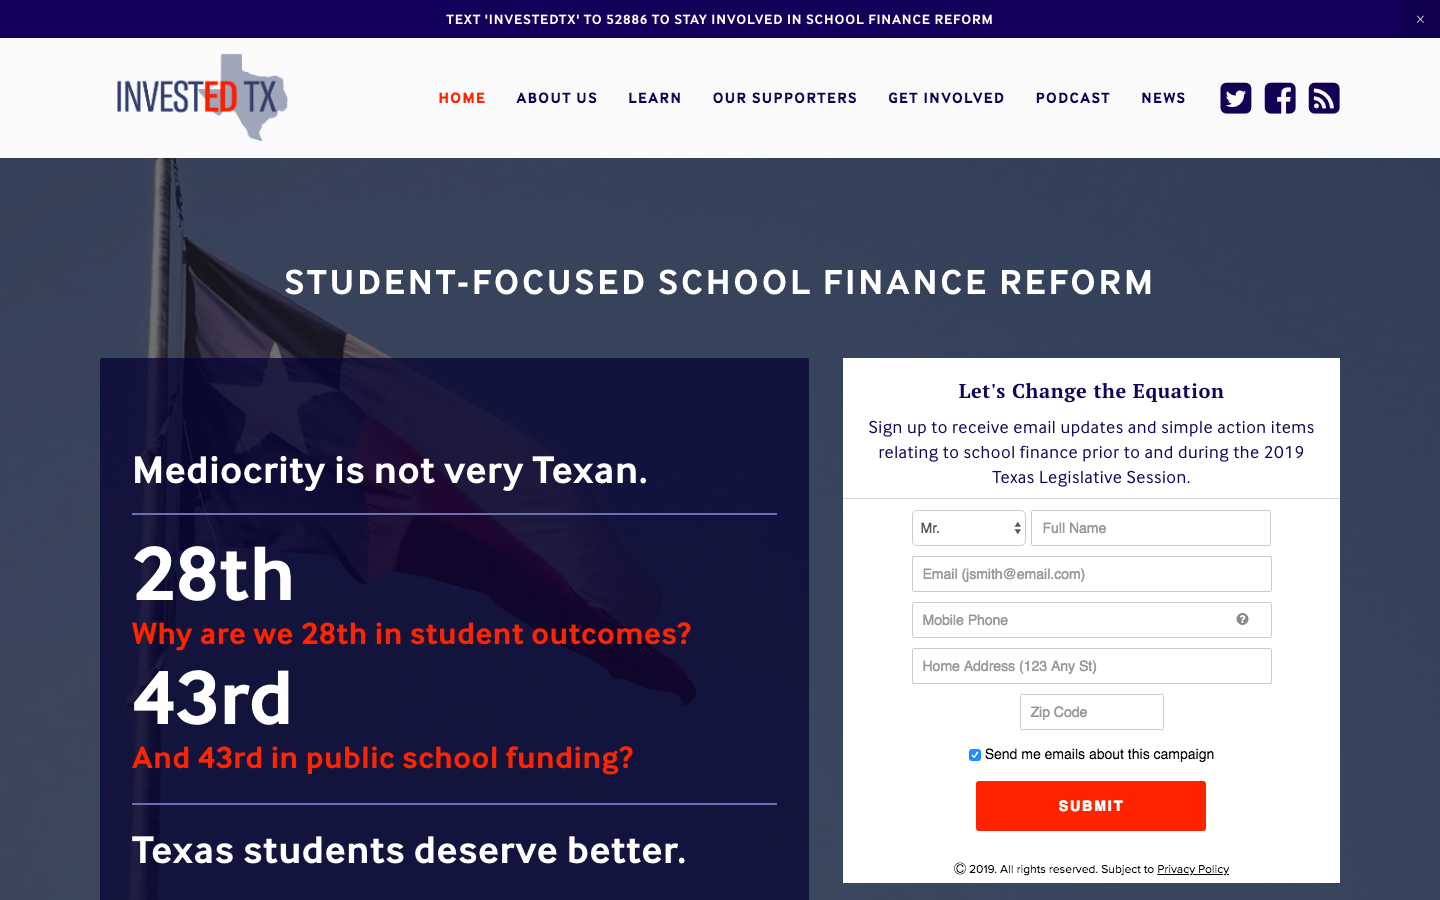 InvestEDTx.png